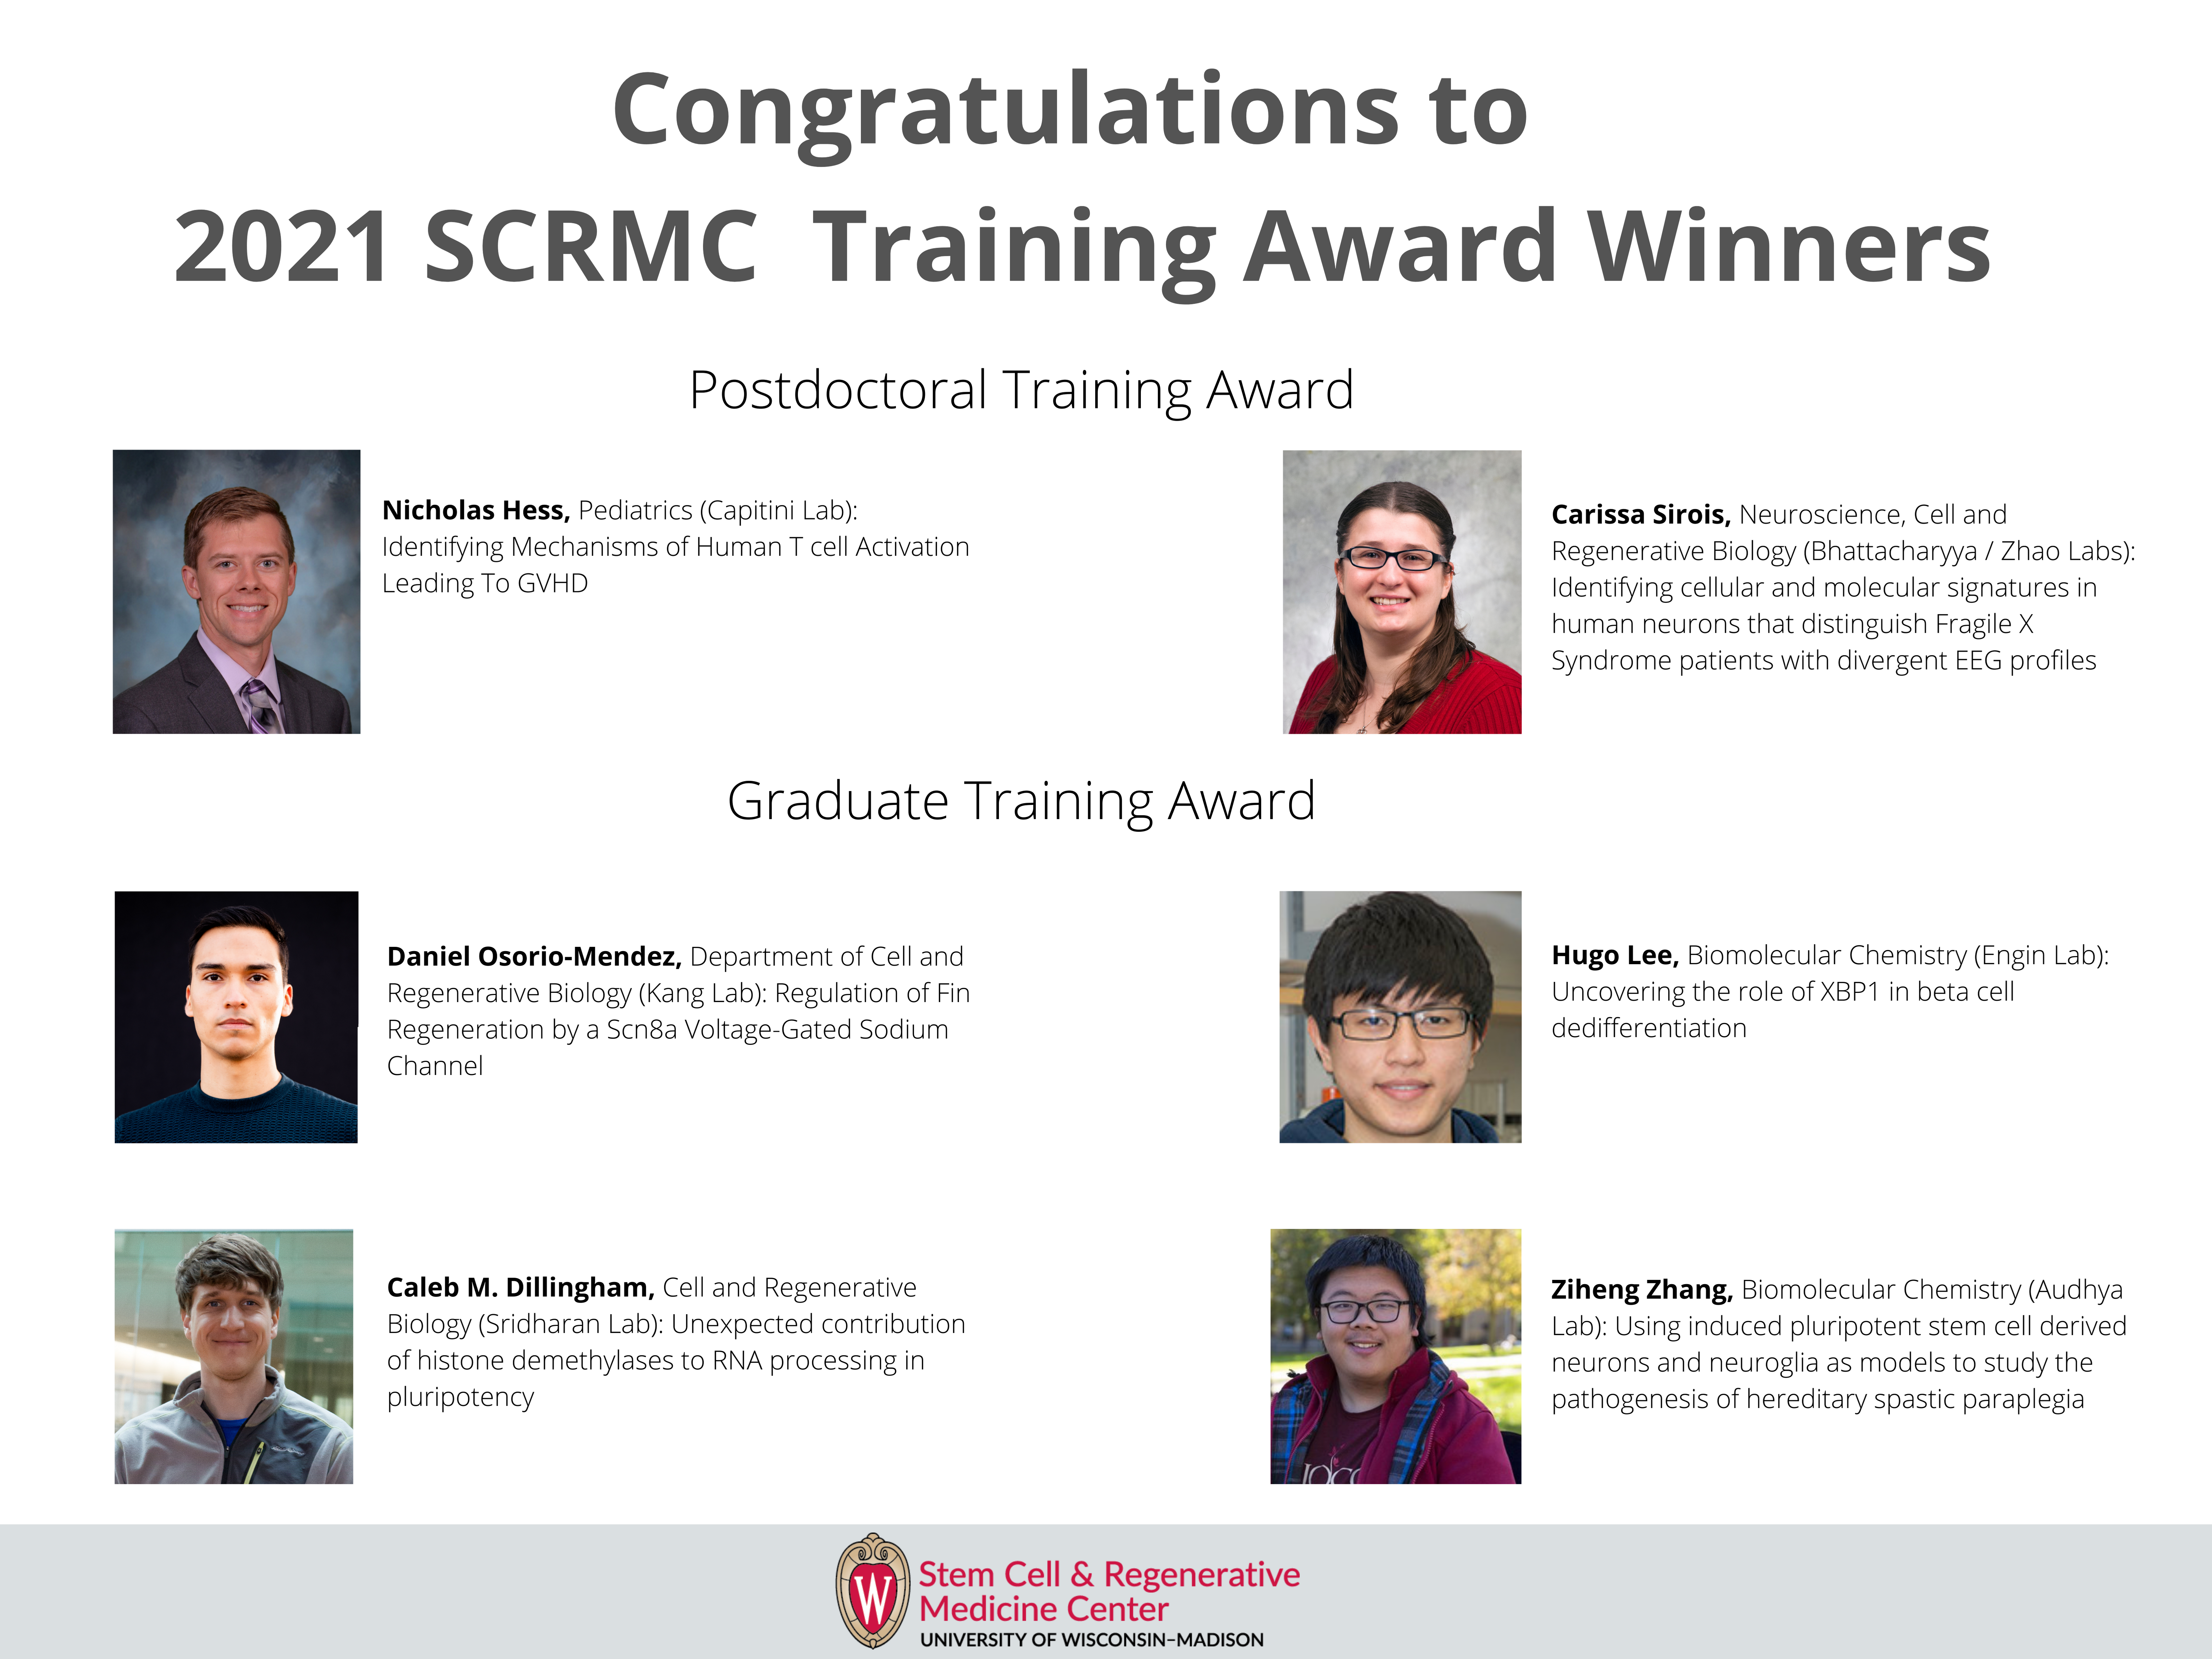 Congratulations to 2021 SCRMC Training Award Winners: Postdoctoral Training Award winners: Nicholas Hess, Pediatrics (Capitini Lab): Identifying Mechanisms of Human T cell Activation Leading To GVHD; Carissa Sirois, Neuroscience, Cell and Regenerative Biology (Bhattacharyya / Zhao Labs): Identifying cellular and molecular signatures in human neurons that distinguish Fragile X Syndrome patients with divergent EEG profiles. Graduate Training Award winners: Daniel Osorio-Mendez, Department of Cell and Regenerative Biology (Kang Lab): Regulation of Fin Regeneration by a Scn8a Voltage-Gated Sodium Channel; Hugo Lee, Biomolecular Chemistry (Engin Lab): Uncovering the role of XBP1 in beta cell dedifferentiation; Caleb M. Dillingham, Cell and Regenerative Biology (Sridharan Lab): Unexpected contribution of histone demethylases to RNA processing in pluripotency; Ziheng Zhang, Biomolecular Chemistry (Audhya Lab): Using induced pluripotent stem cell derived neurons and neuroglia as models to study the pathogenesis of hereditary spastic paraplegia.